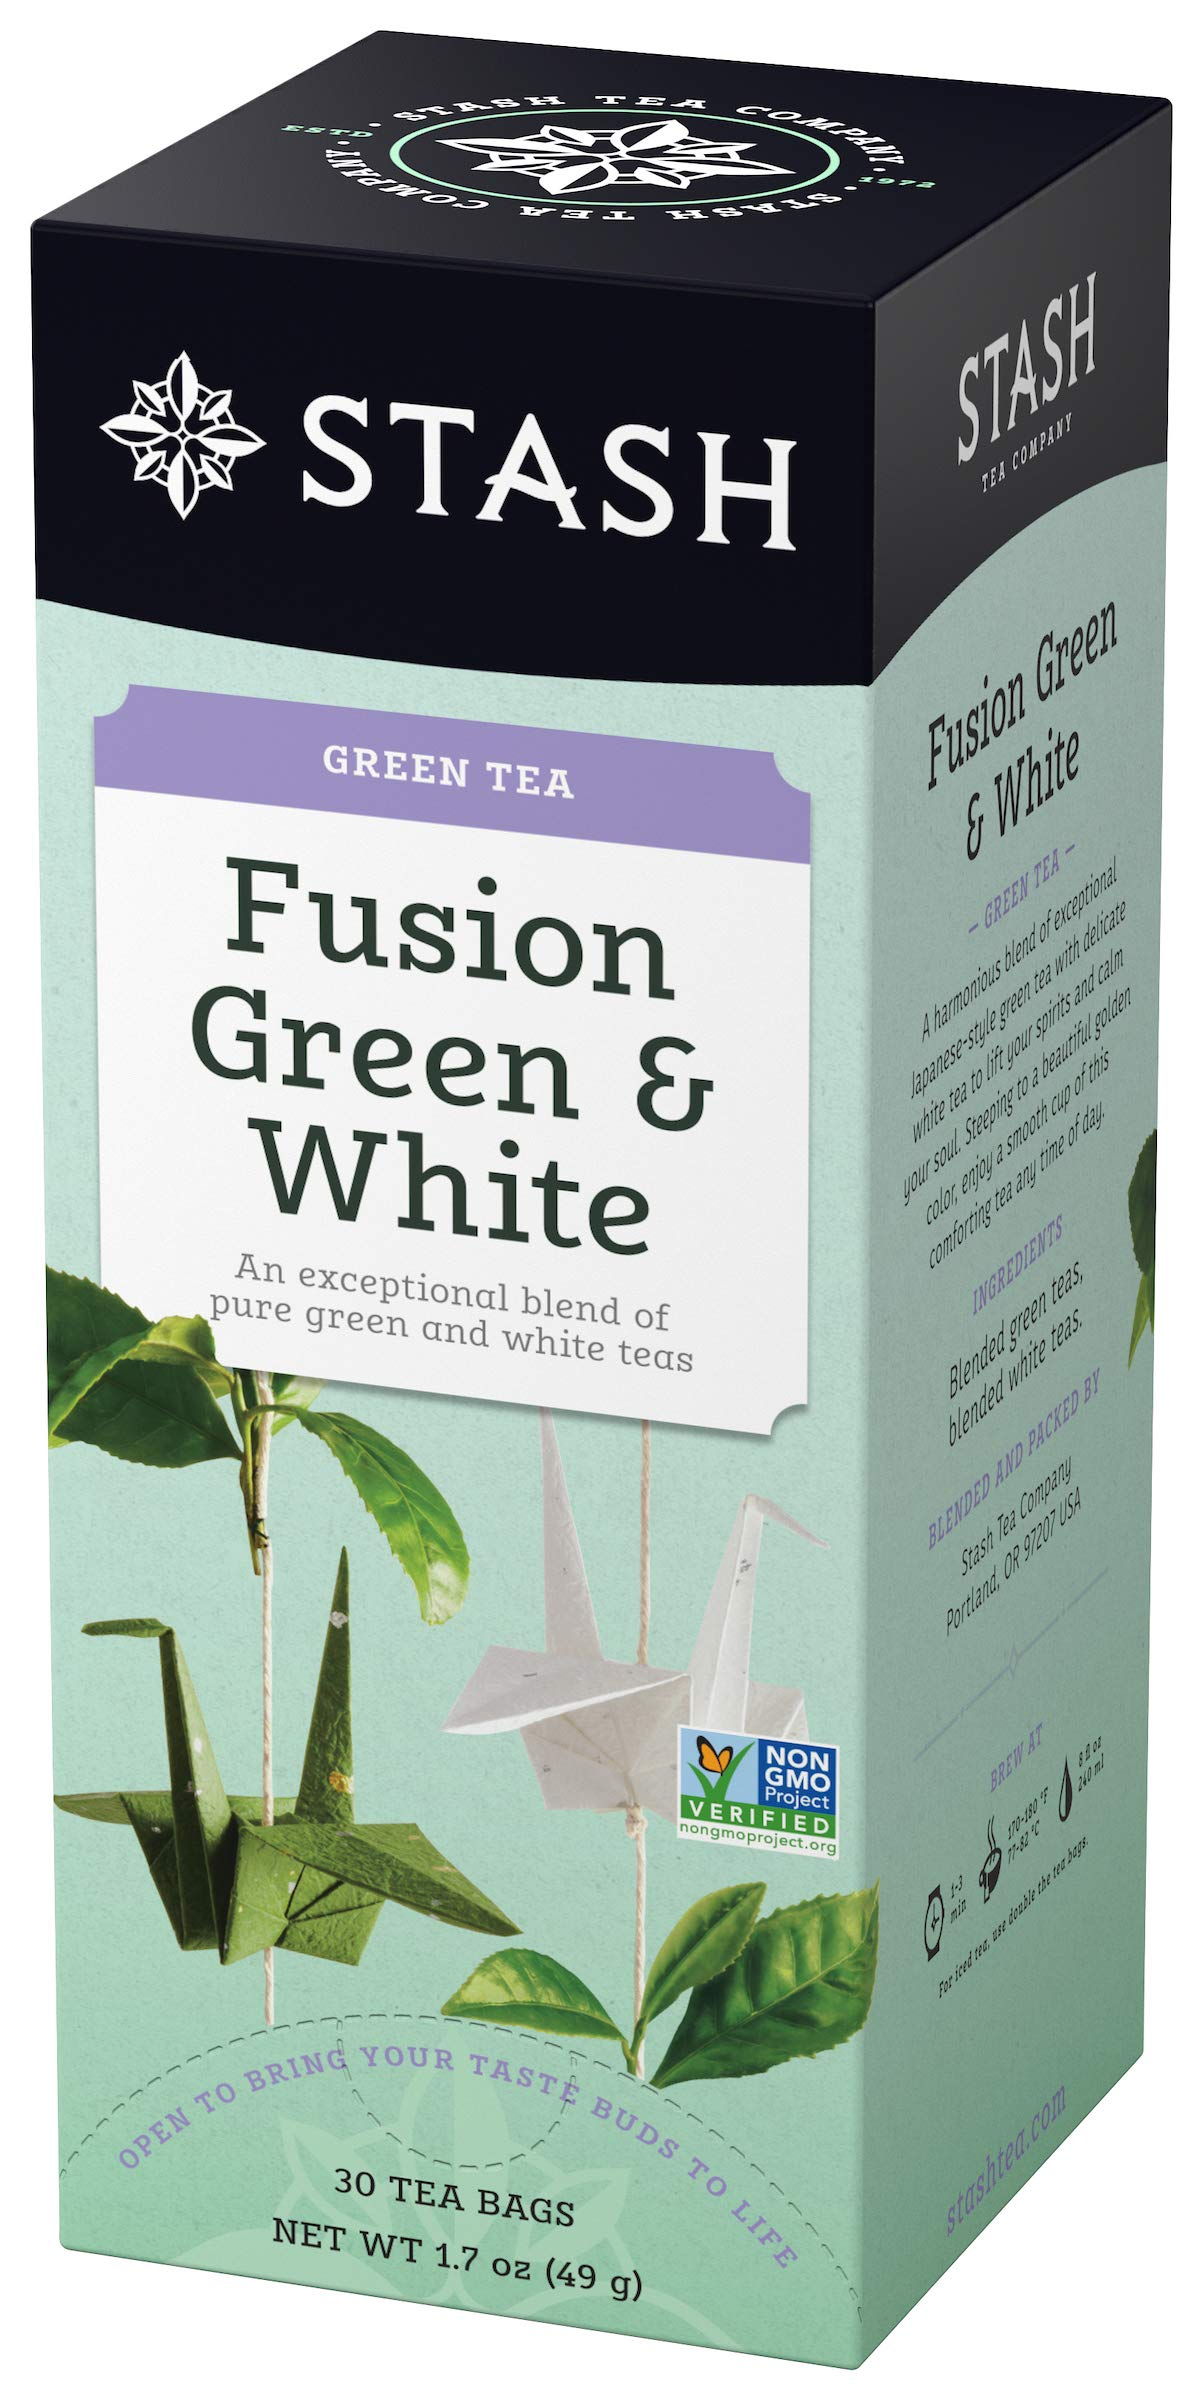 Stash Tea Fusion Green & White Tea 30 Count Tea Bags in Foil (Pack of 6) (Packaging May Vary) Individual Tea Bags for Use in Teapots Mugs or Cups, White Tea and Green Tea, Brew Hot or Iced by Stash Tea